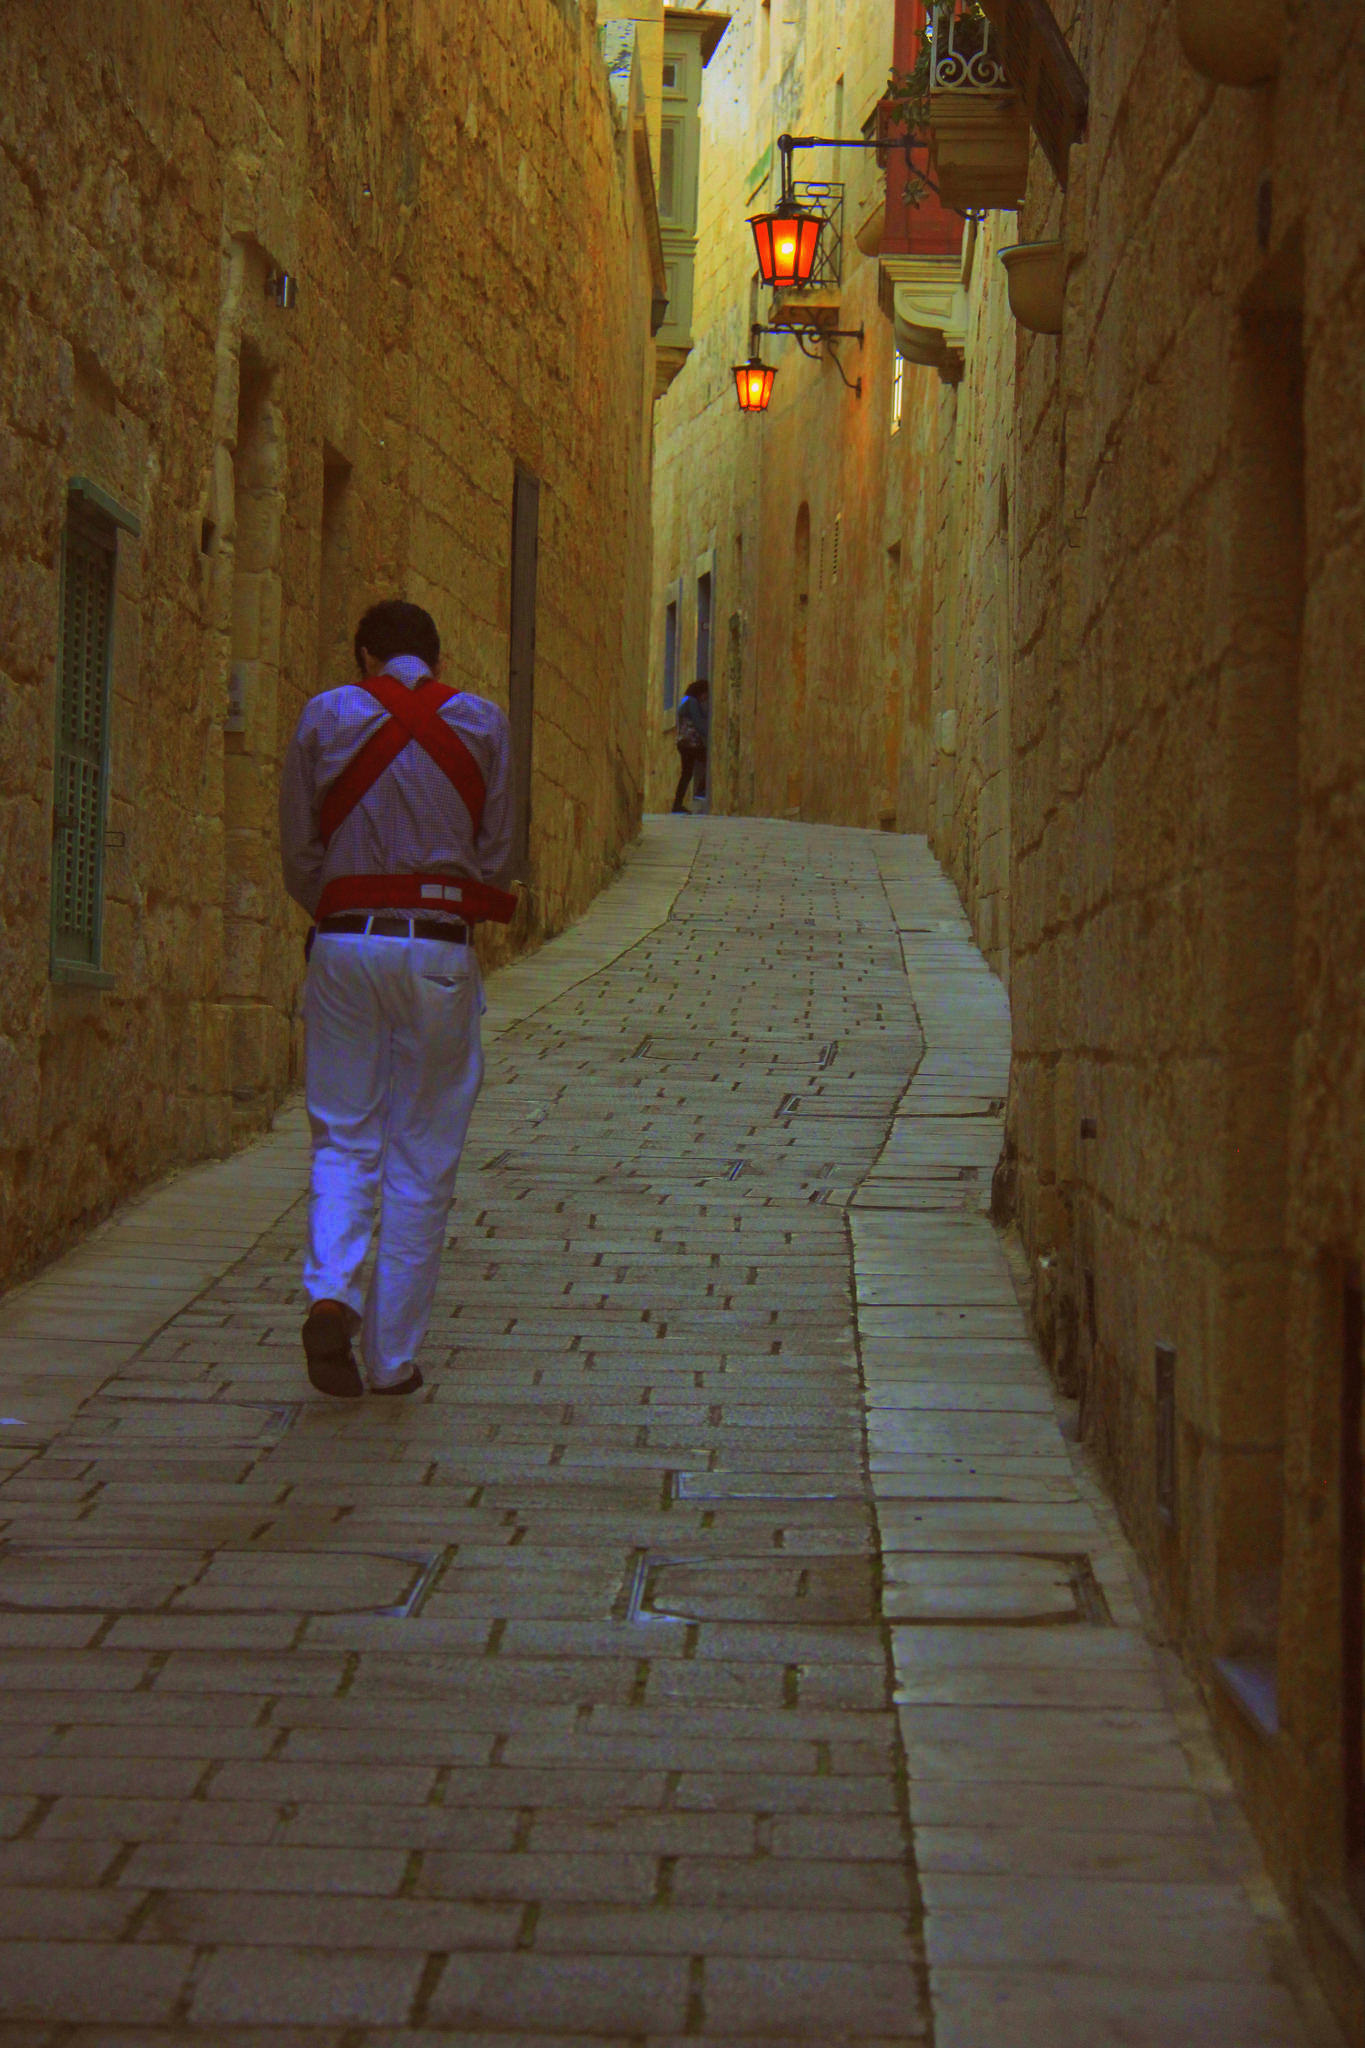 Mdina in Malta has no vehicular traffic of the visitors